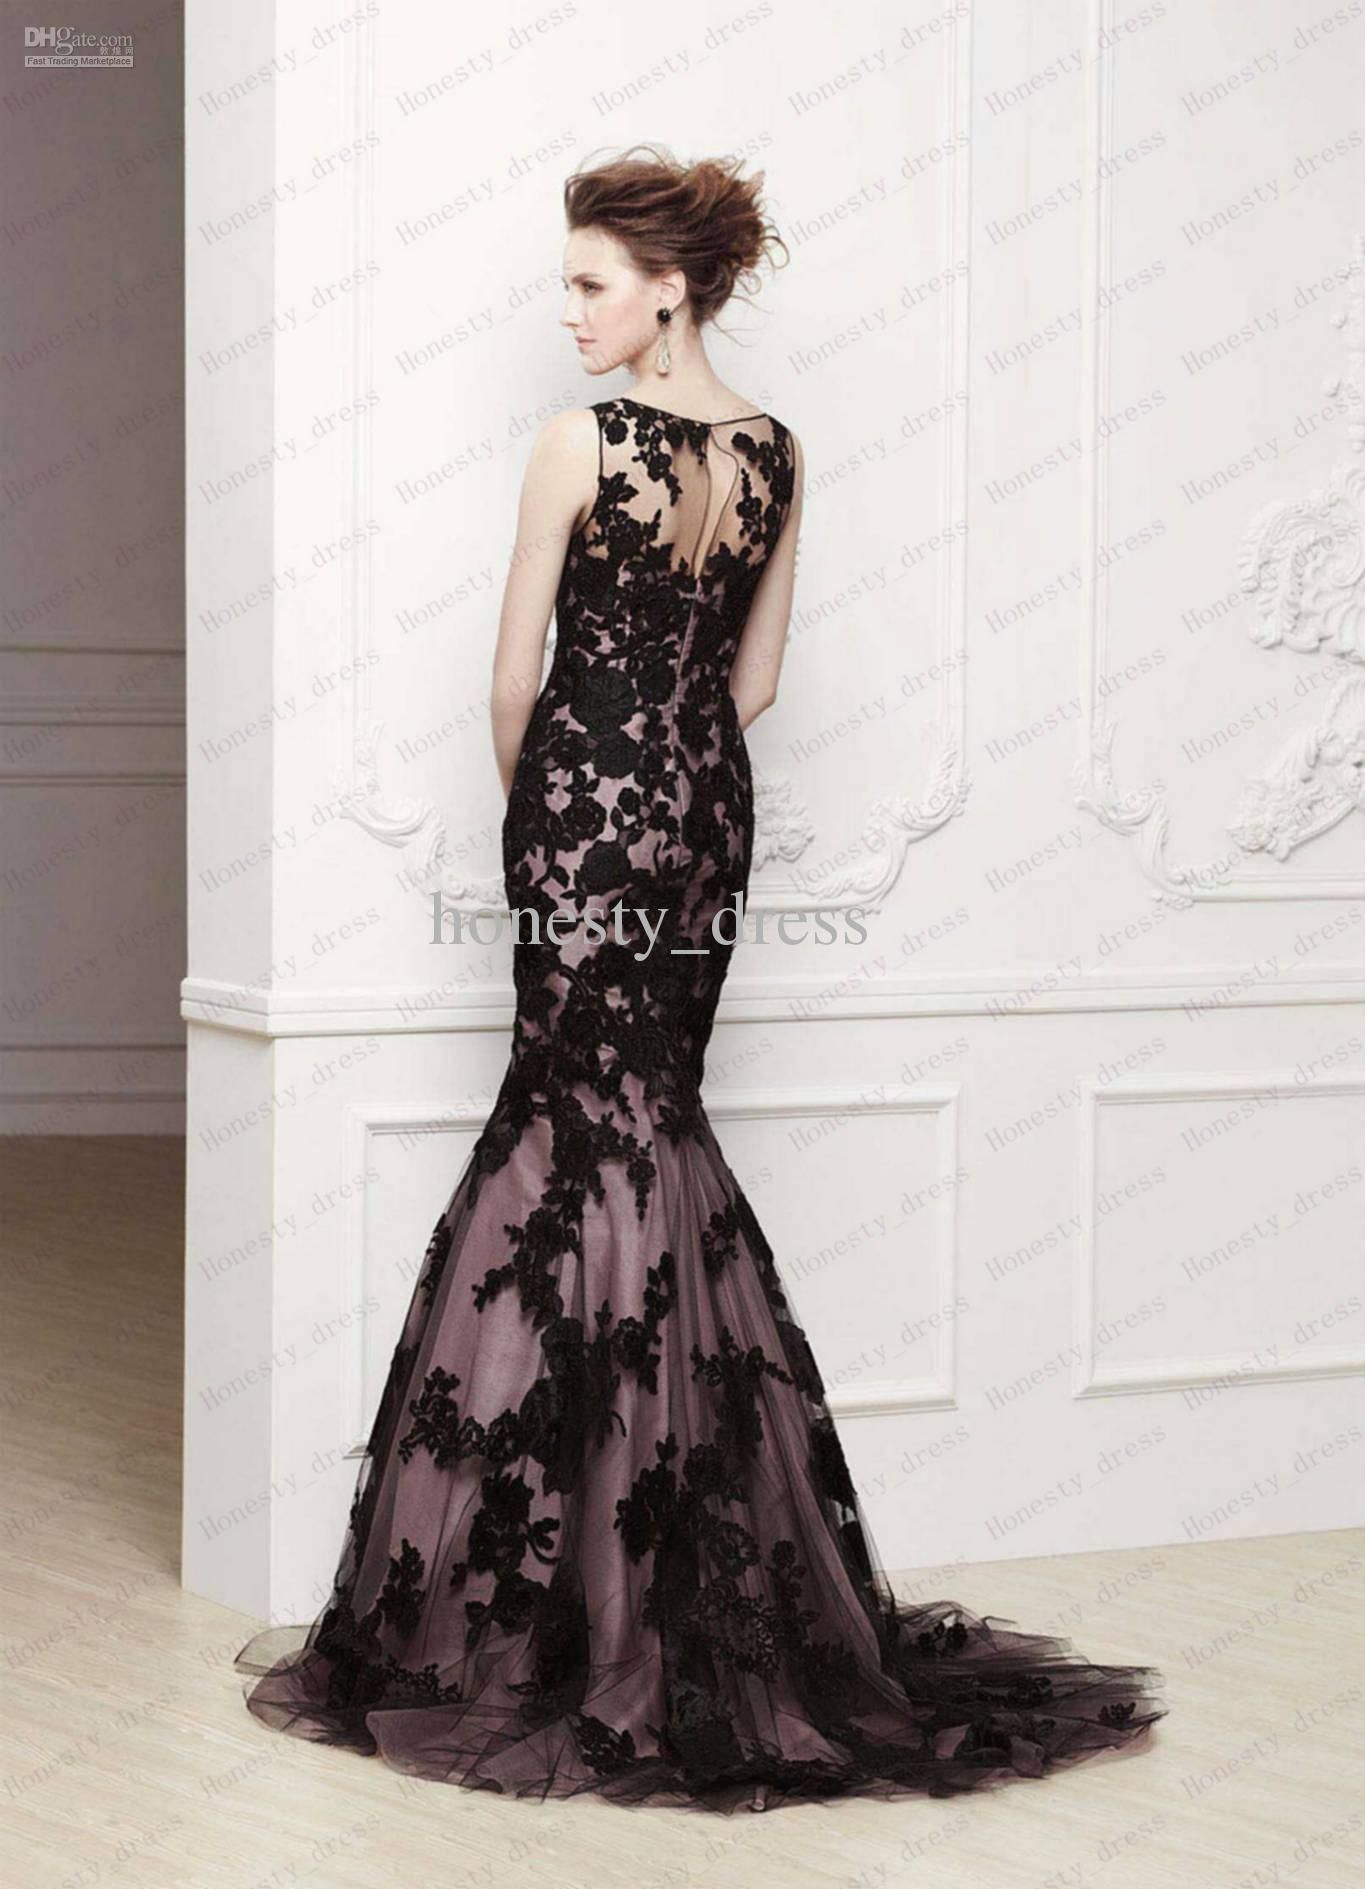 1000  images about Dresses on Pinterest - Lace- Mermaids and Black ...